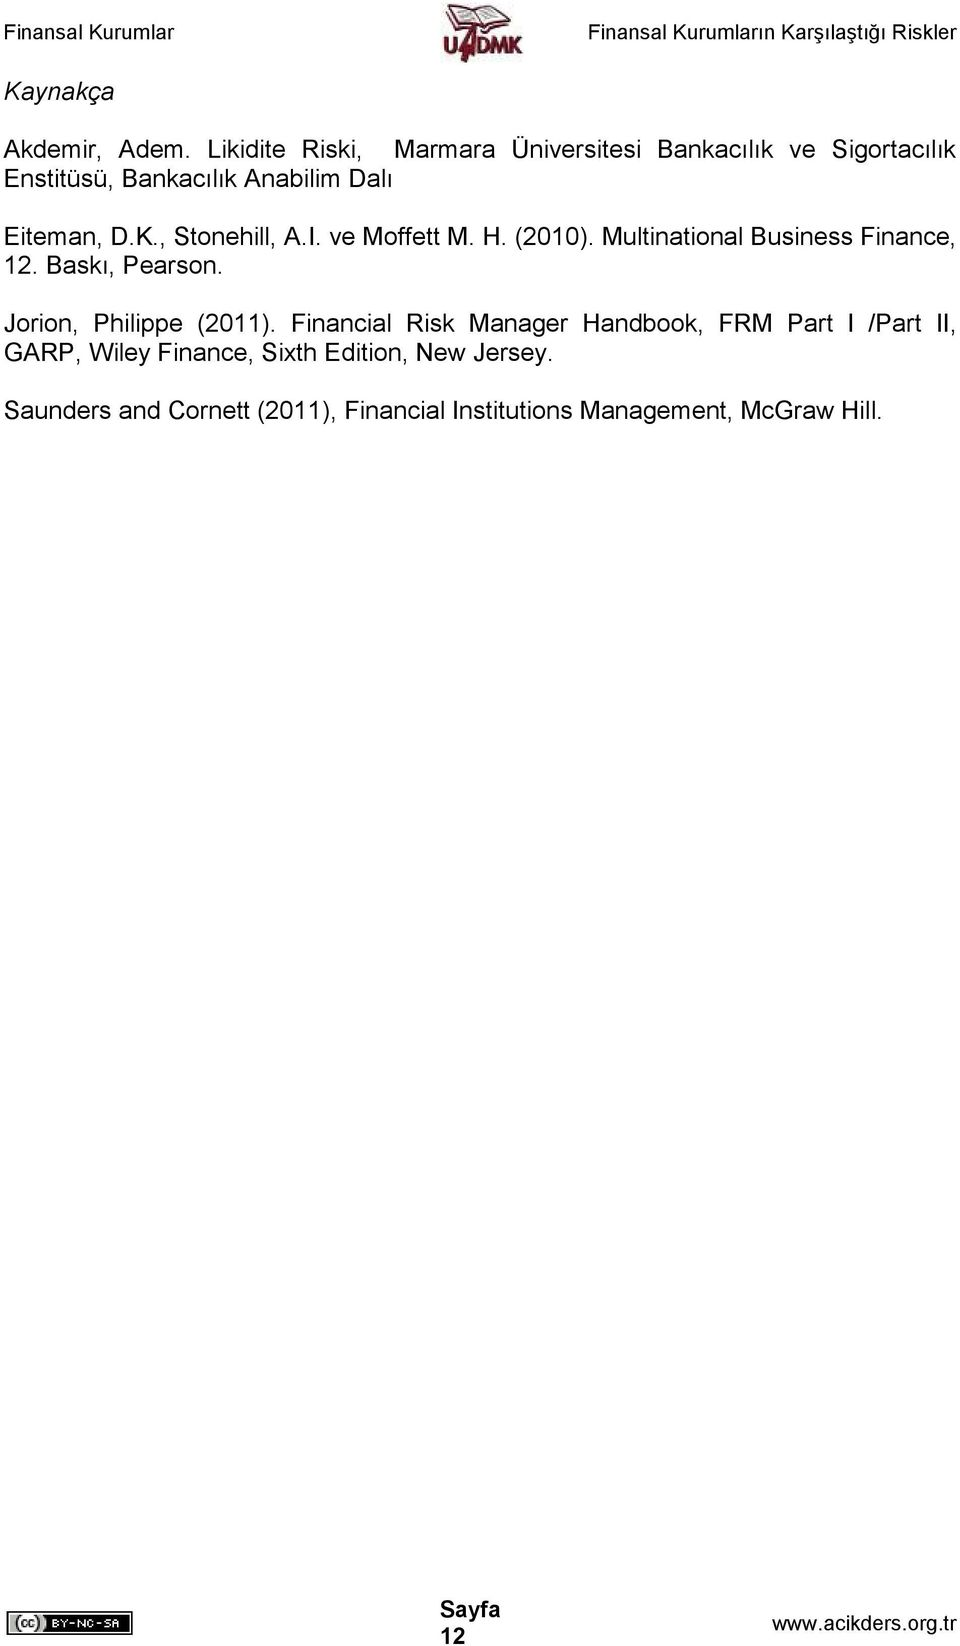 K., Stonehill, A.I. ve Moffett M. H. (2010). Multinational Business Finance, 12. Baskı, Pearson.